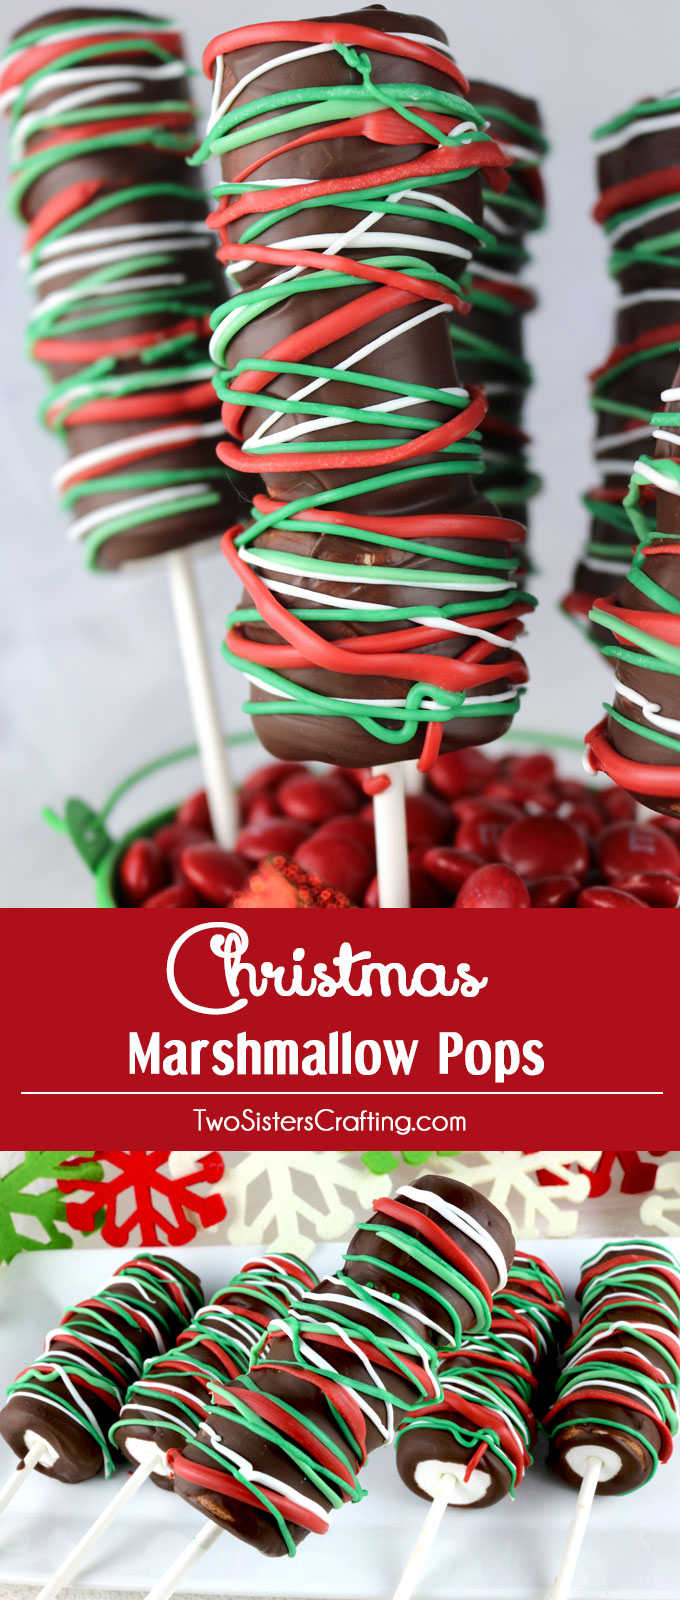 Christmas Marshmallow Pops Two Sisters